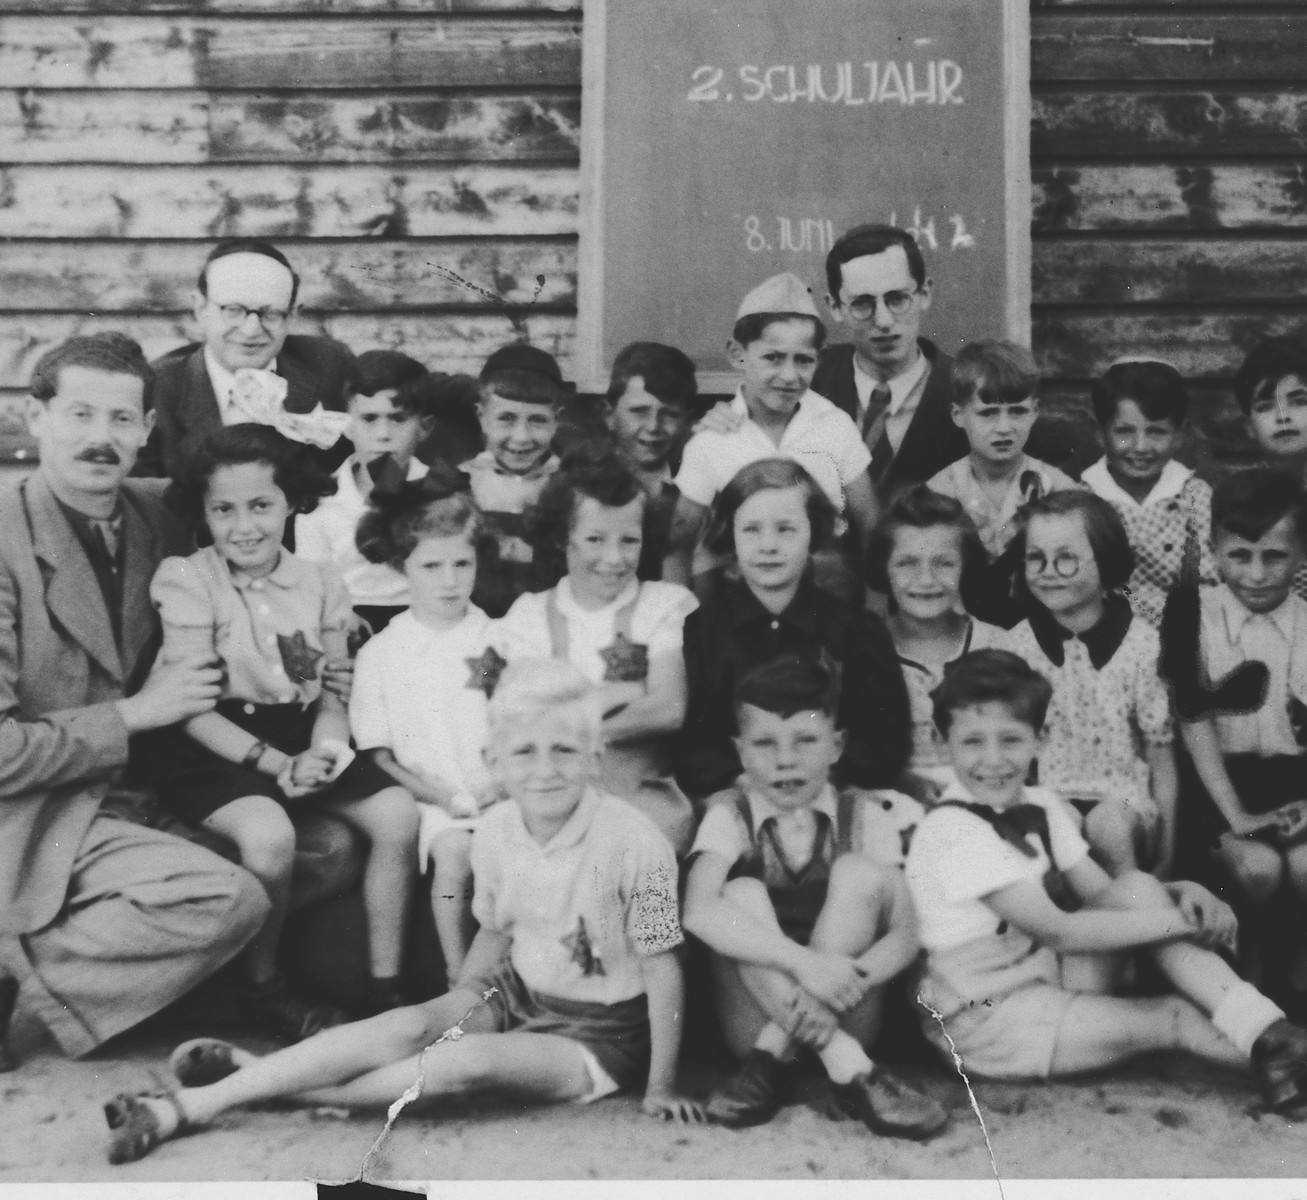 Group portrait of Jewish school children and their teachers, all of whom are wearing Jewish stars, in the Westerbork transit camp.  Among those pictured is Michael Fink (back row center with the white shirt and hat).